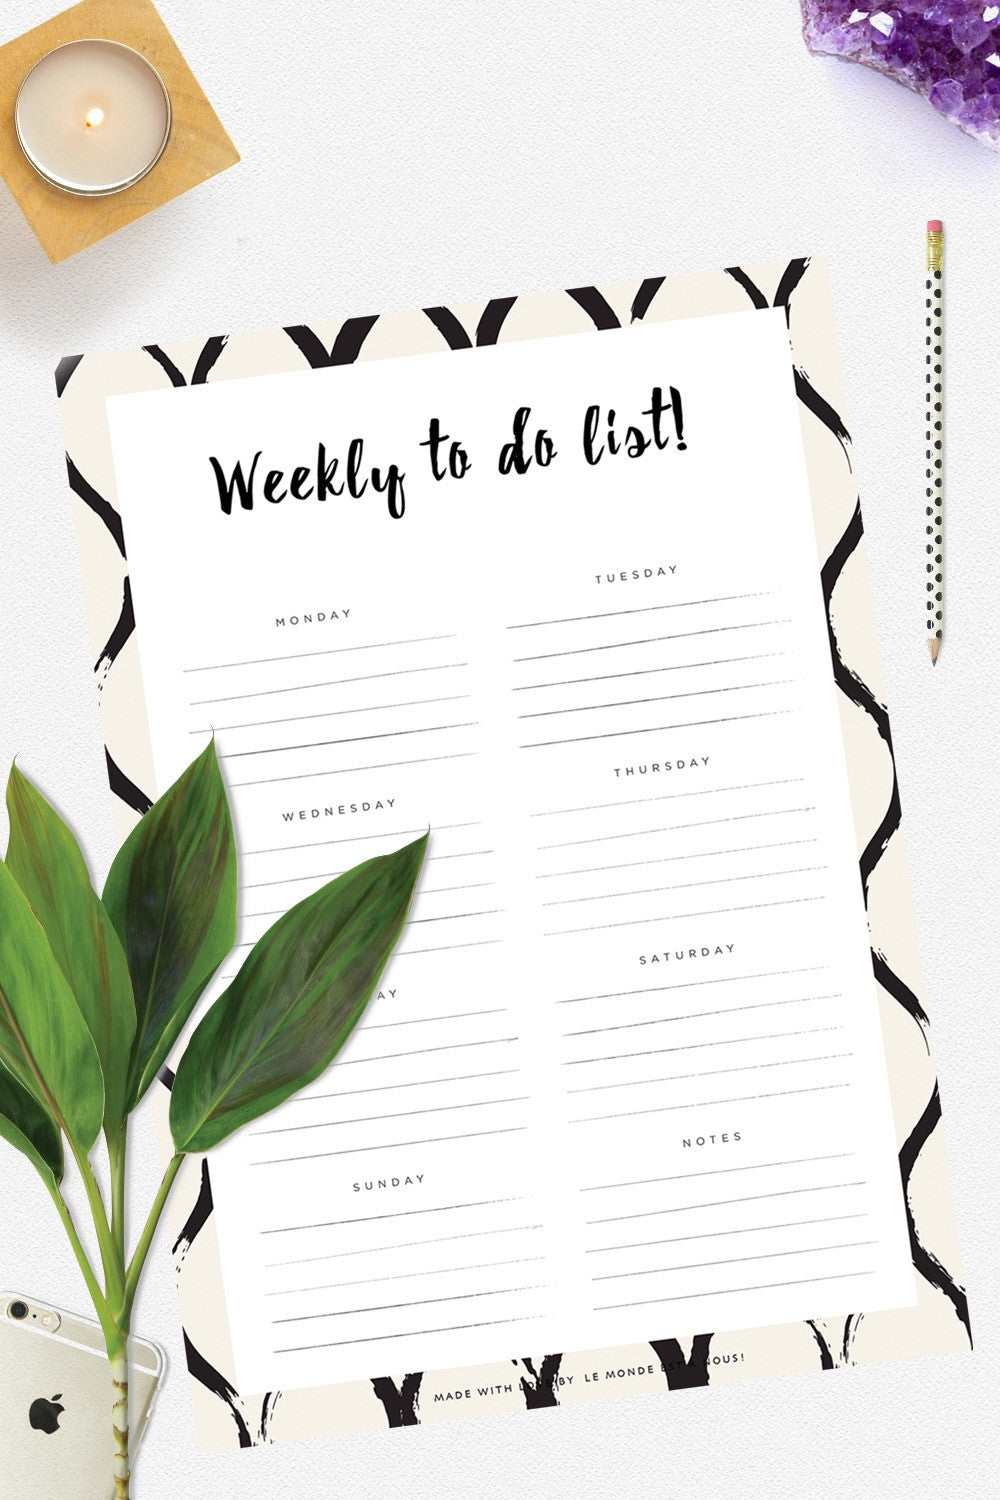 Weekly To do list!